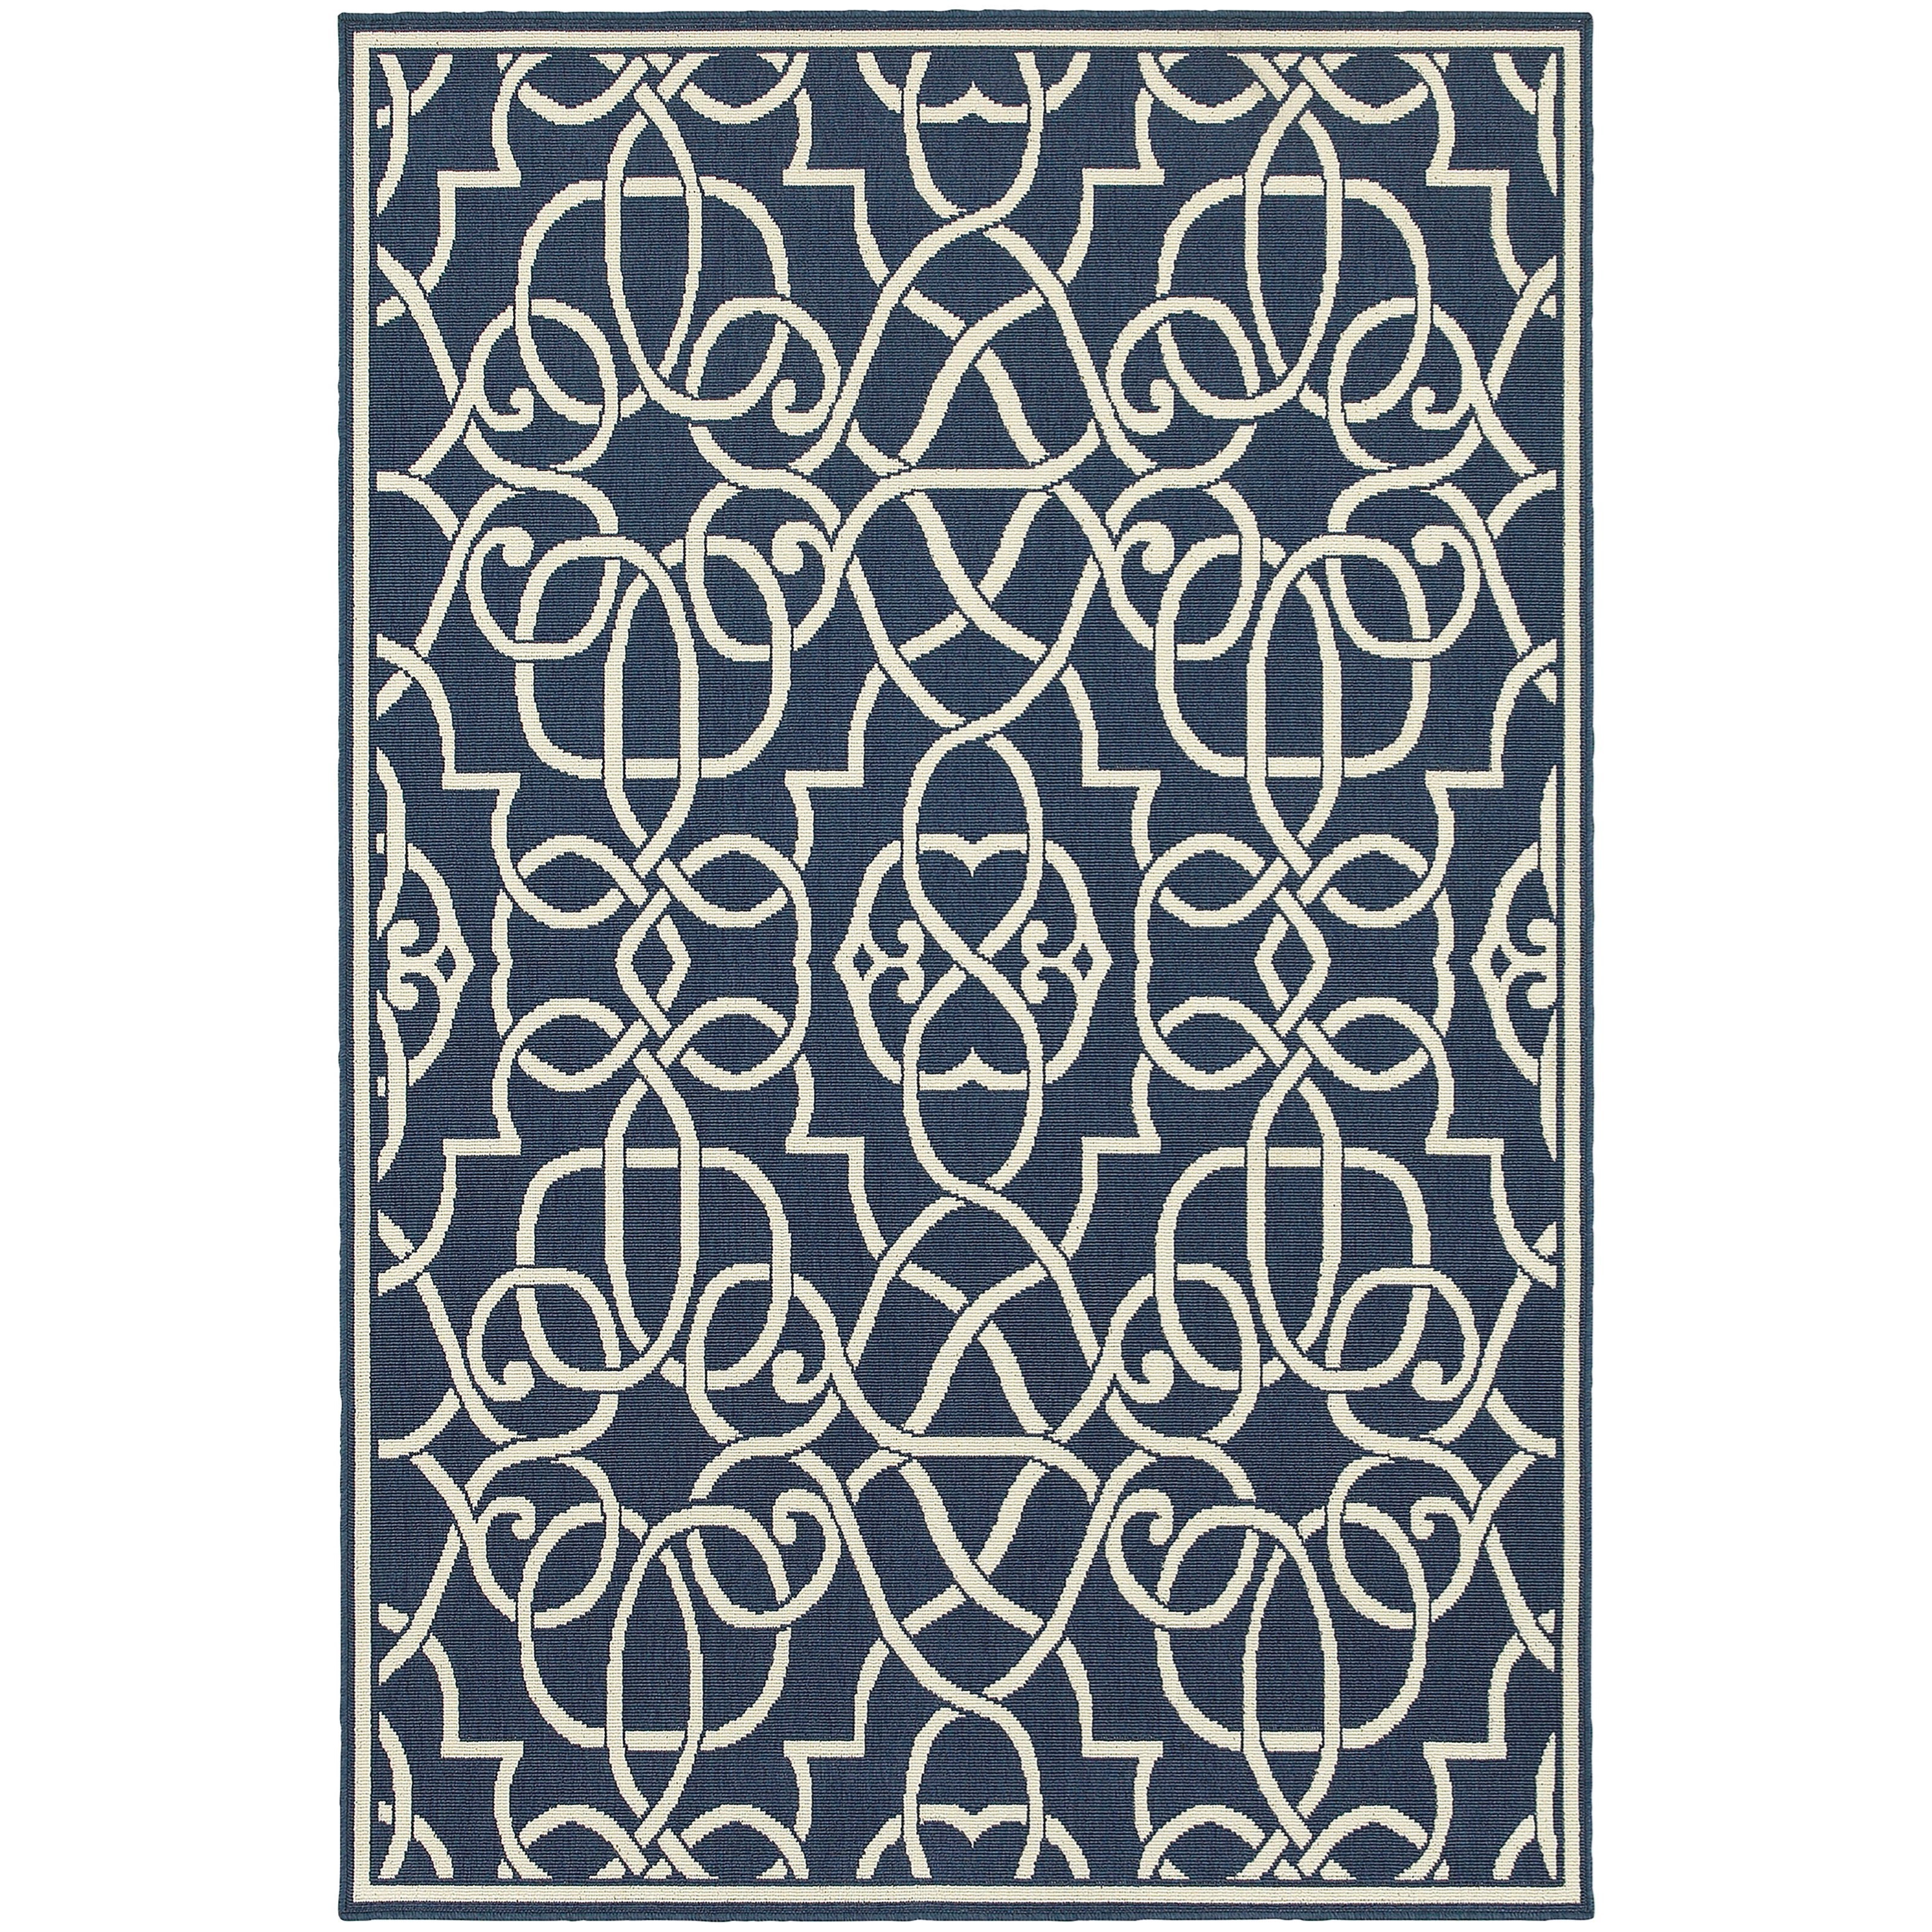 "Meridian 7'10"" X 10'10"" Rectangle Area Rug by Oriental Weavers at Dunk & Bright Furniture"